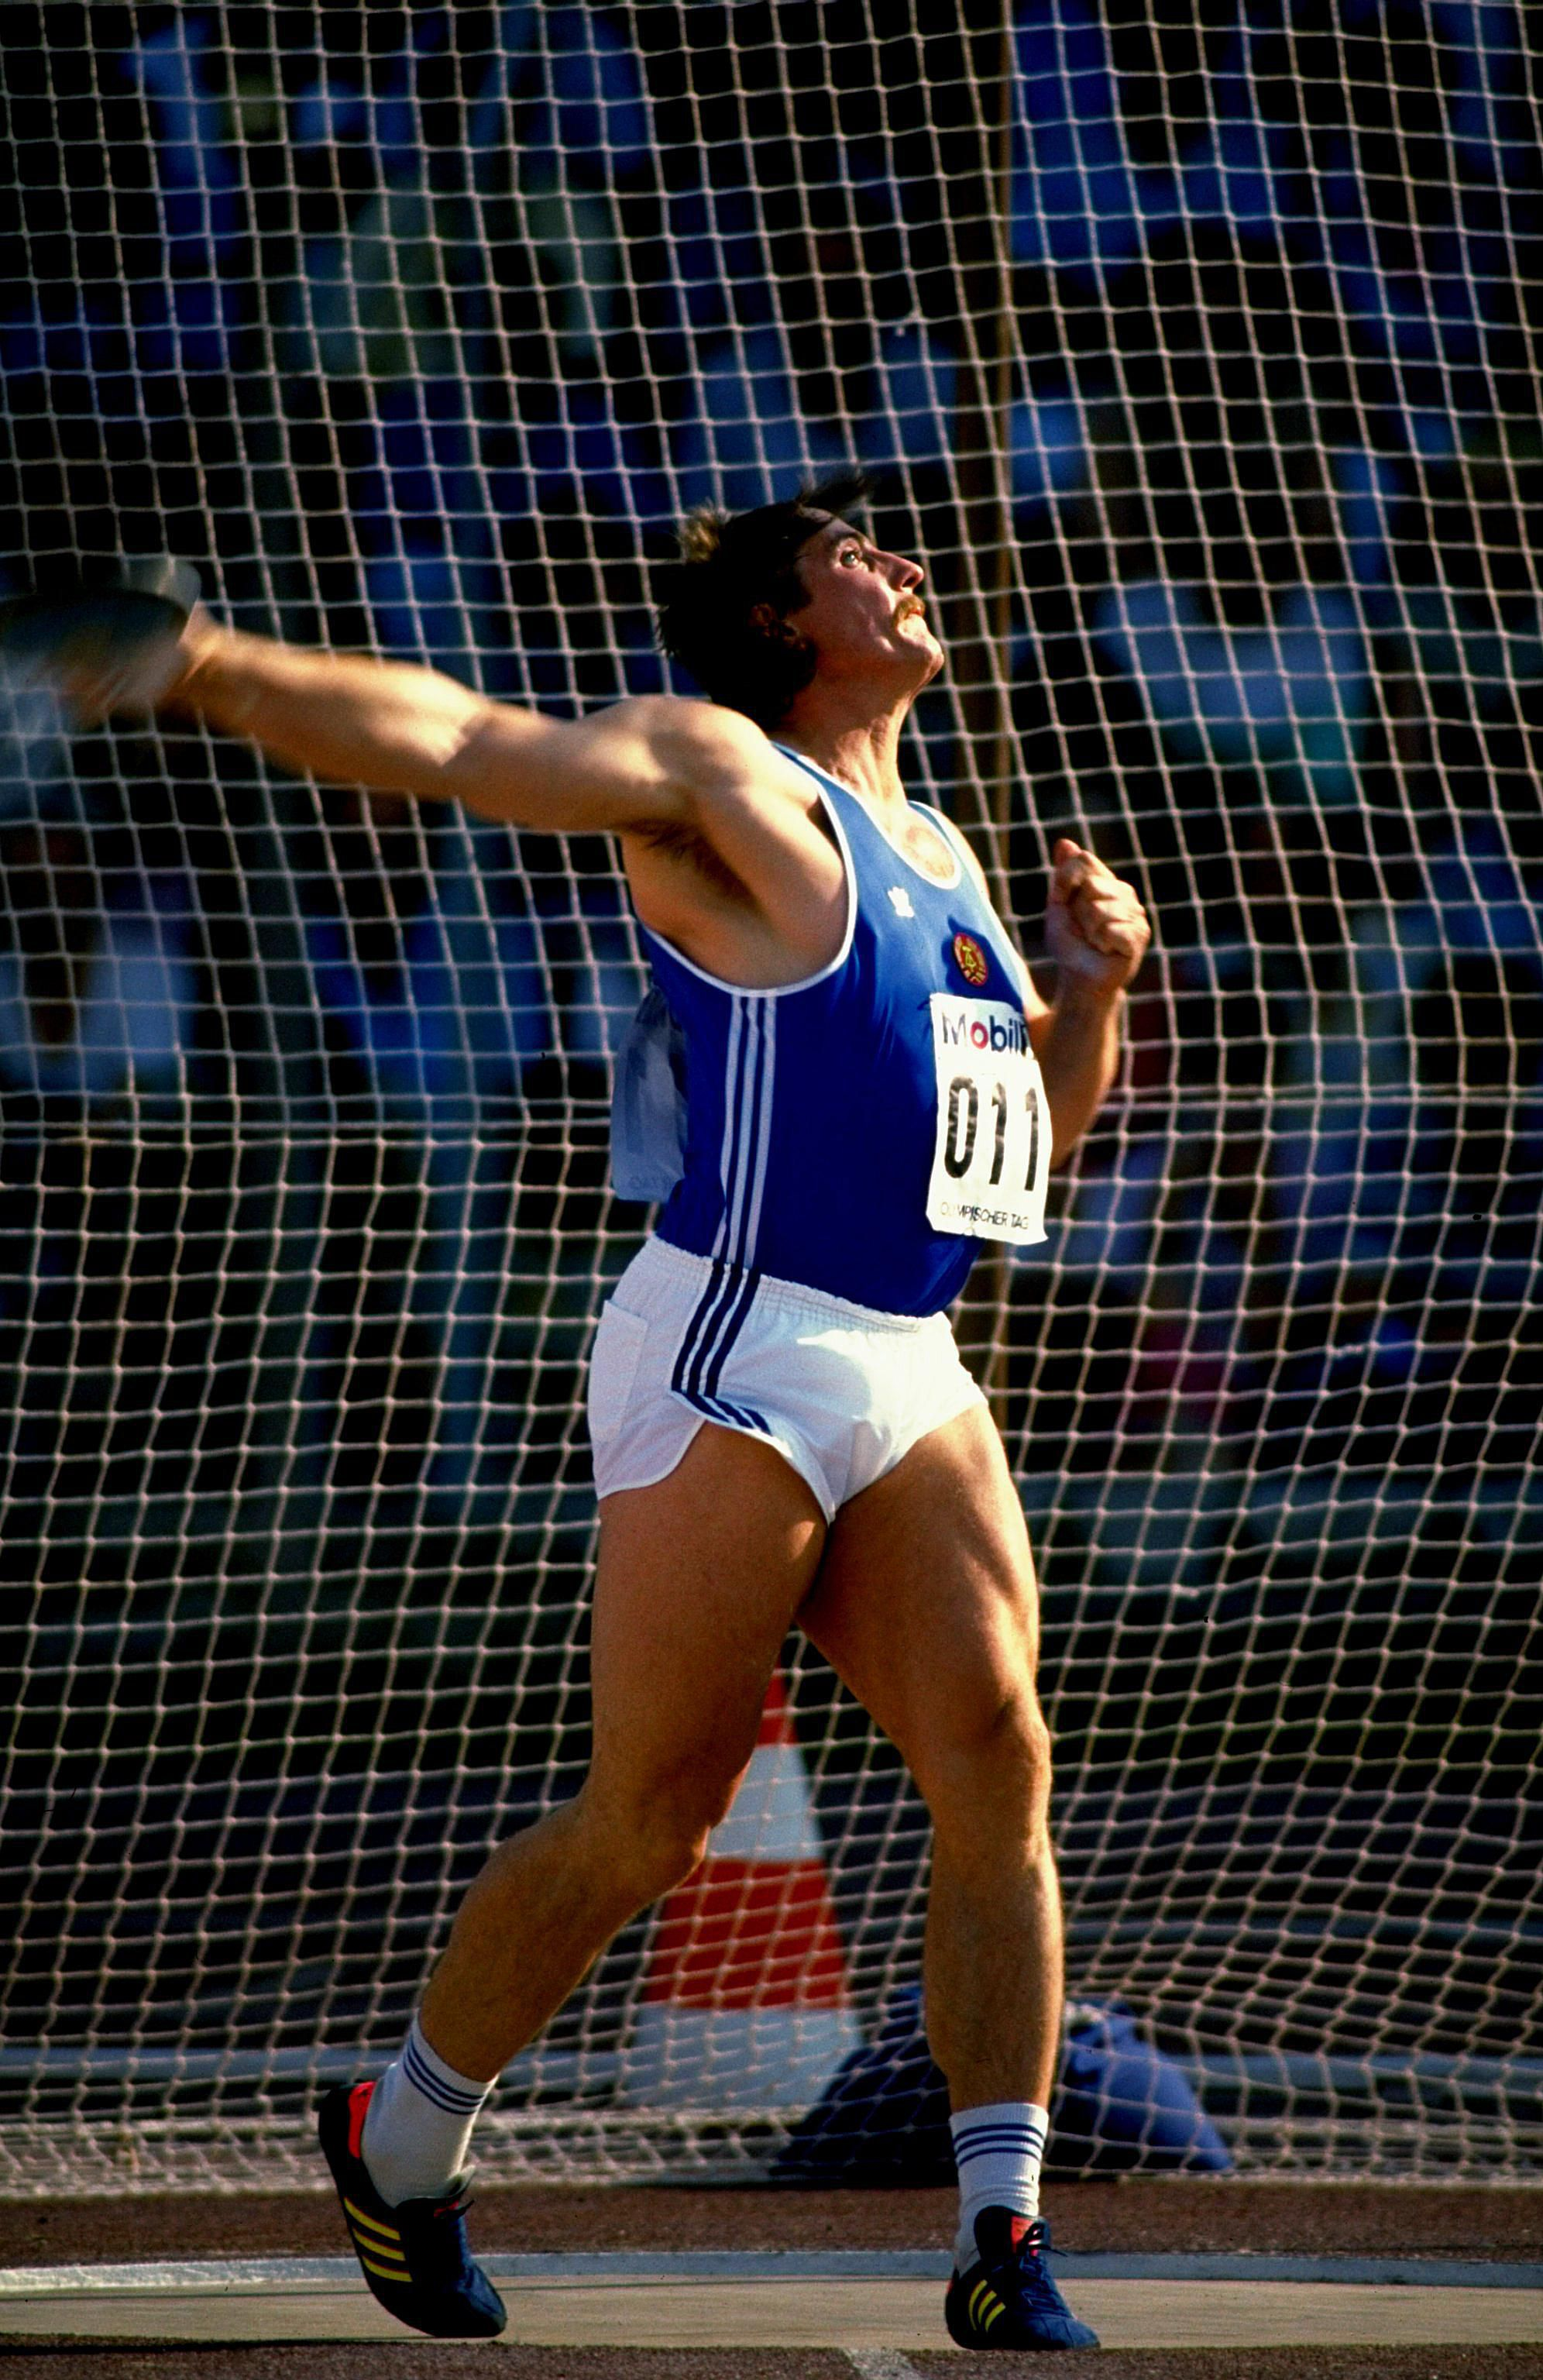 Jurgen Schult throws the discus in 1989. Schult set a world record and also earned one Olympic and one World Championship gold medal during his athletic career.